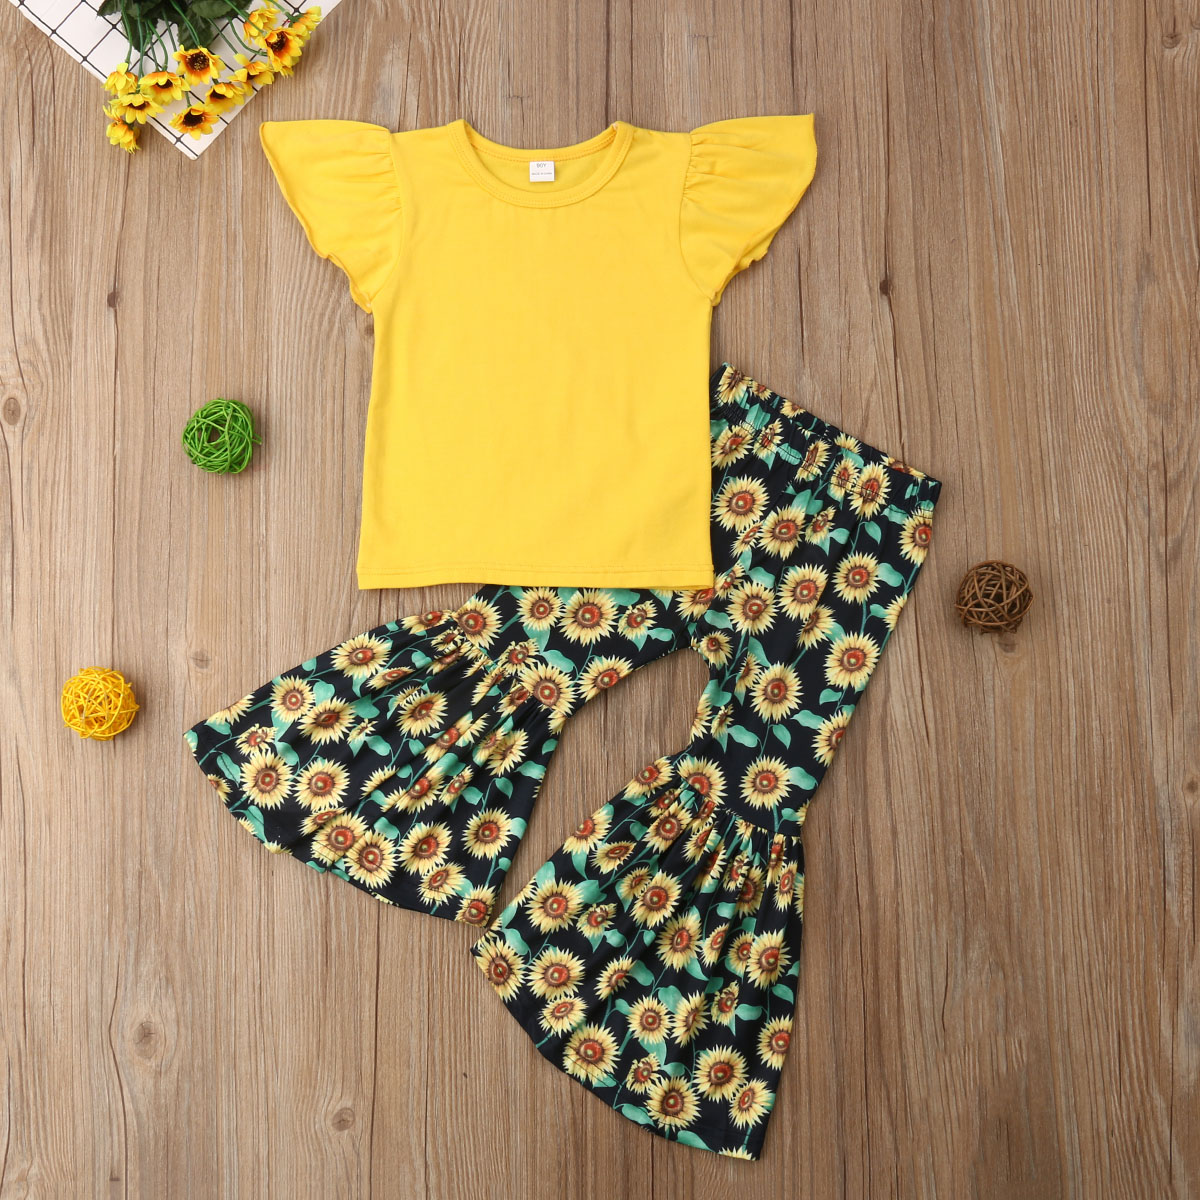 Aliexpress.com : Buy Baby Girl Clothes Fly Sleeve Top T ...